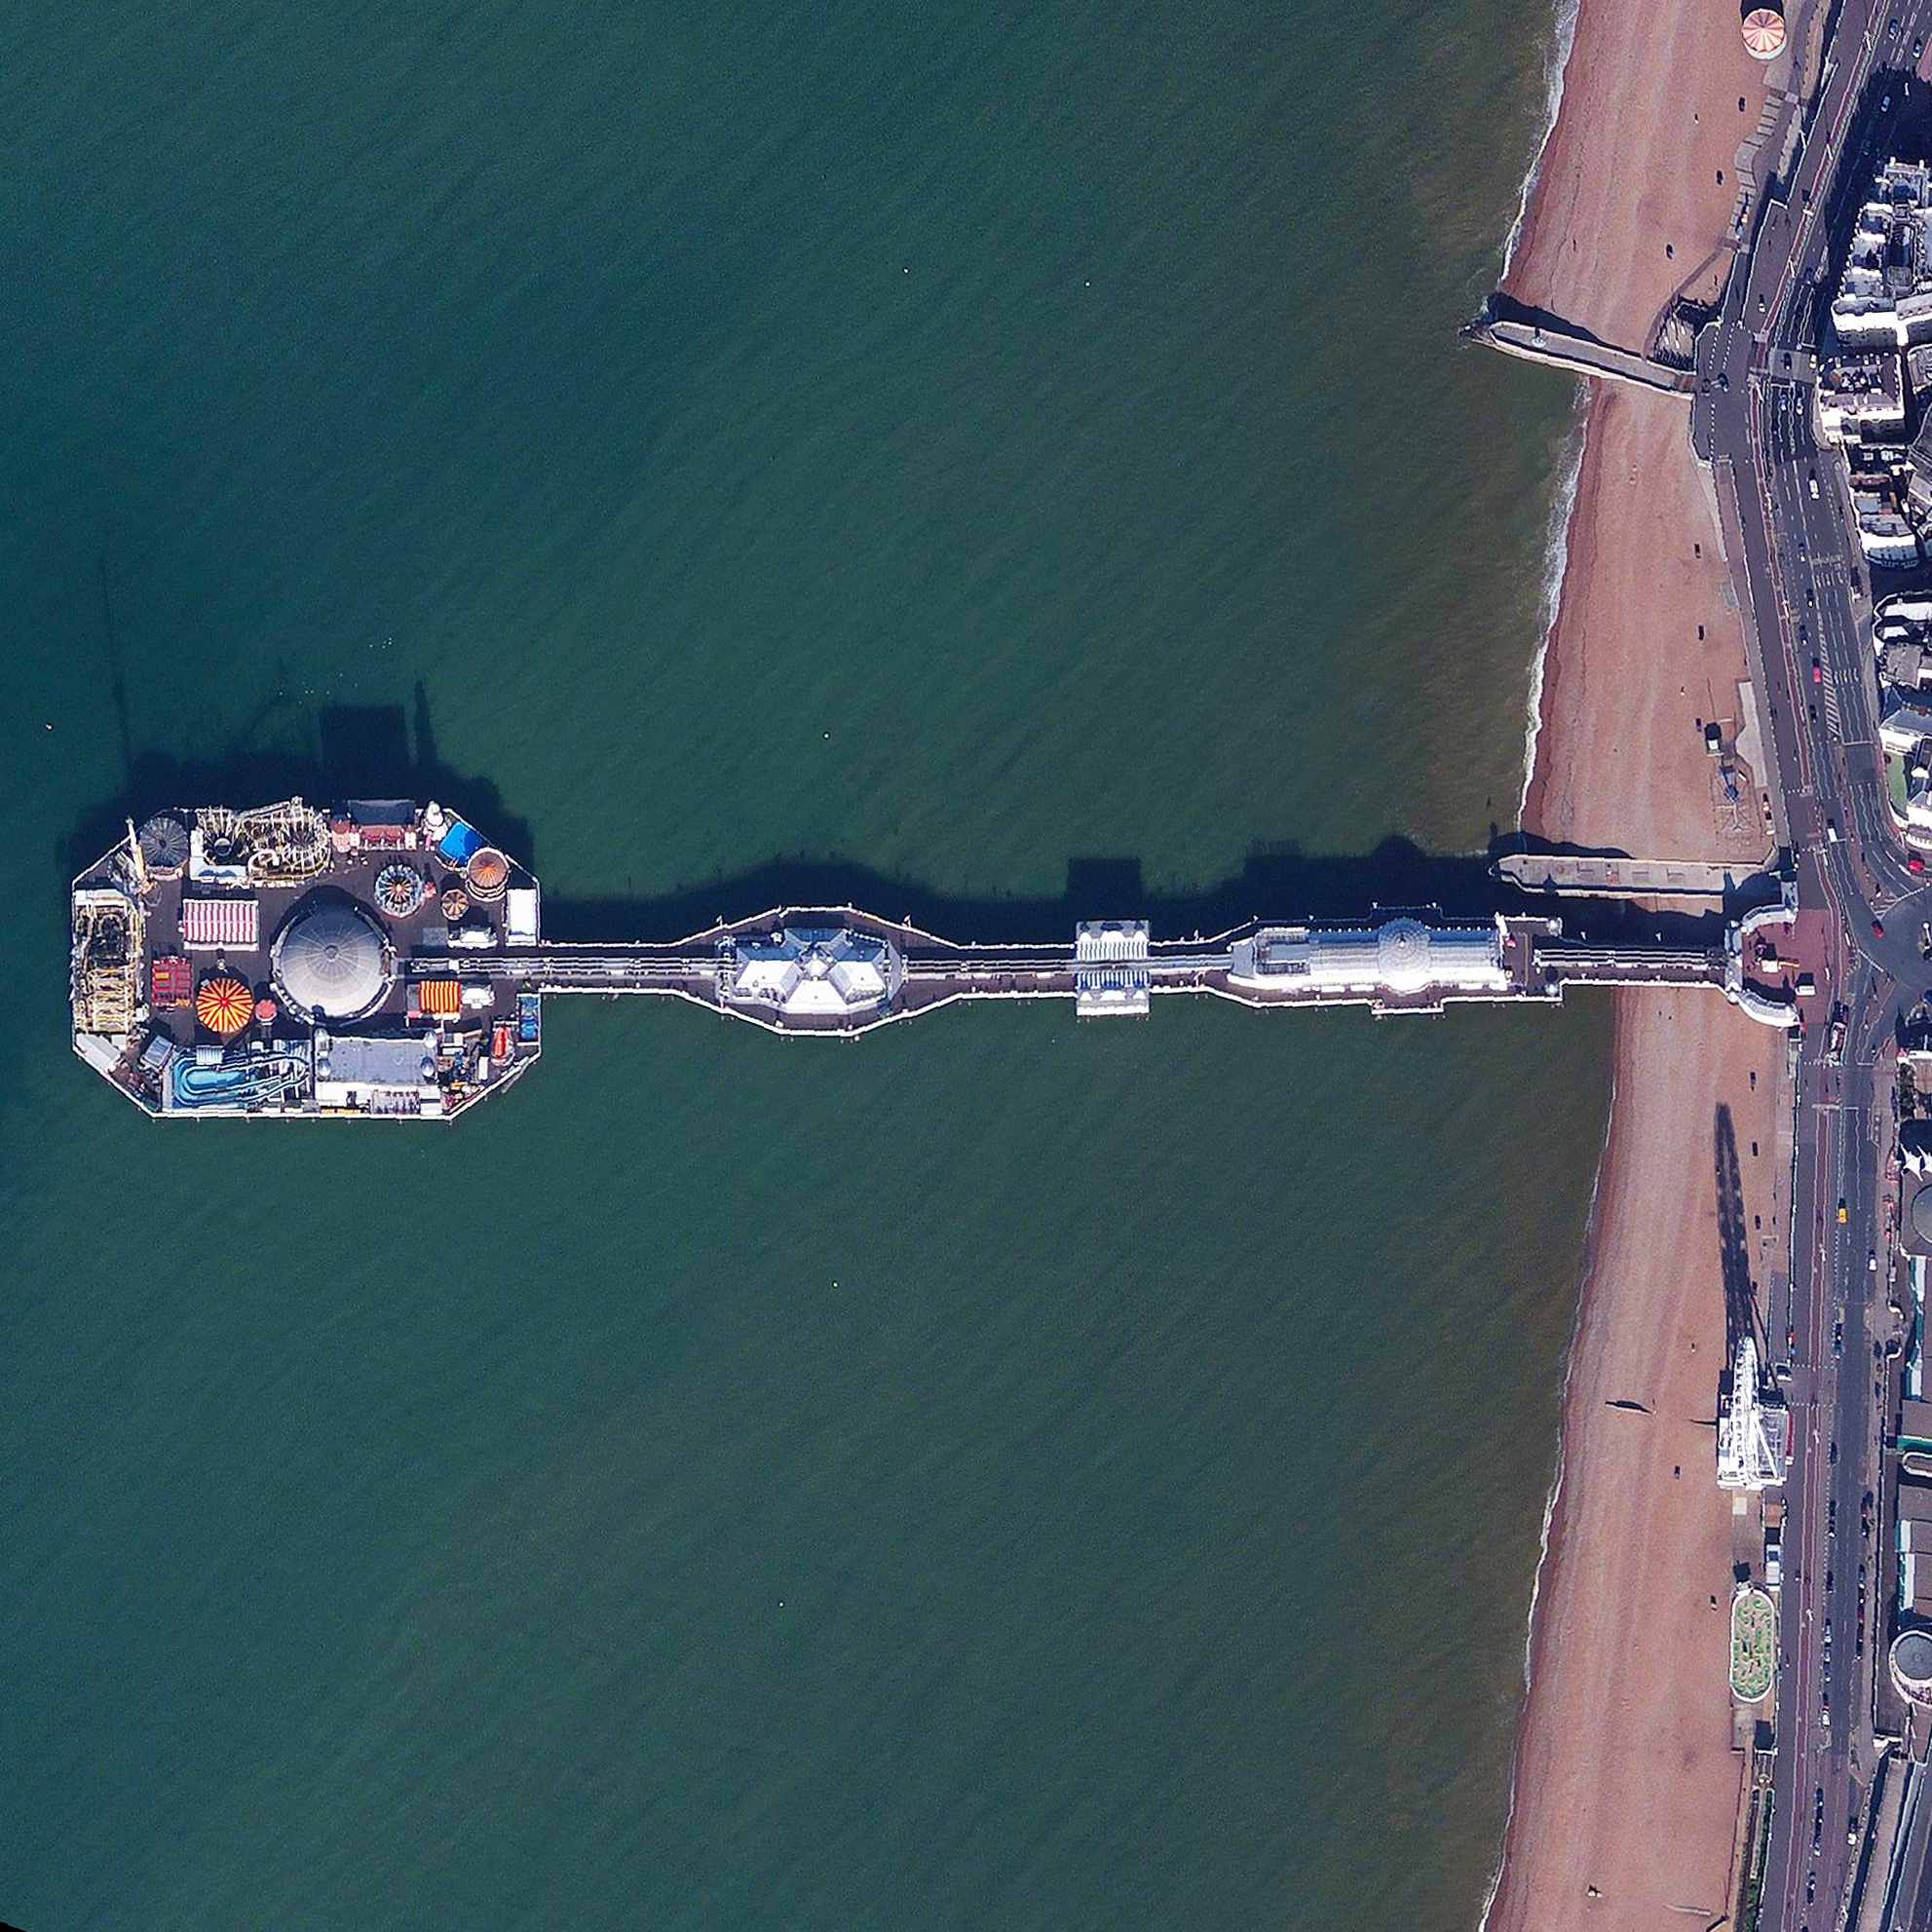 9/26/2015   Brighton Pier   Brighton, England  50.816387979°, -0.137252700°    Brighton Pier, also known as Palace Pier, is constructed off the coast of the English city of Brighton. Extending 1,719 feet (524 meters) into the English Channel, the structure contains numerous restaurants, rides, and roller coasters.